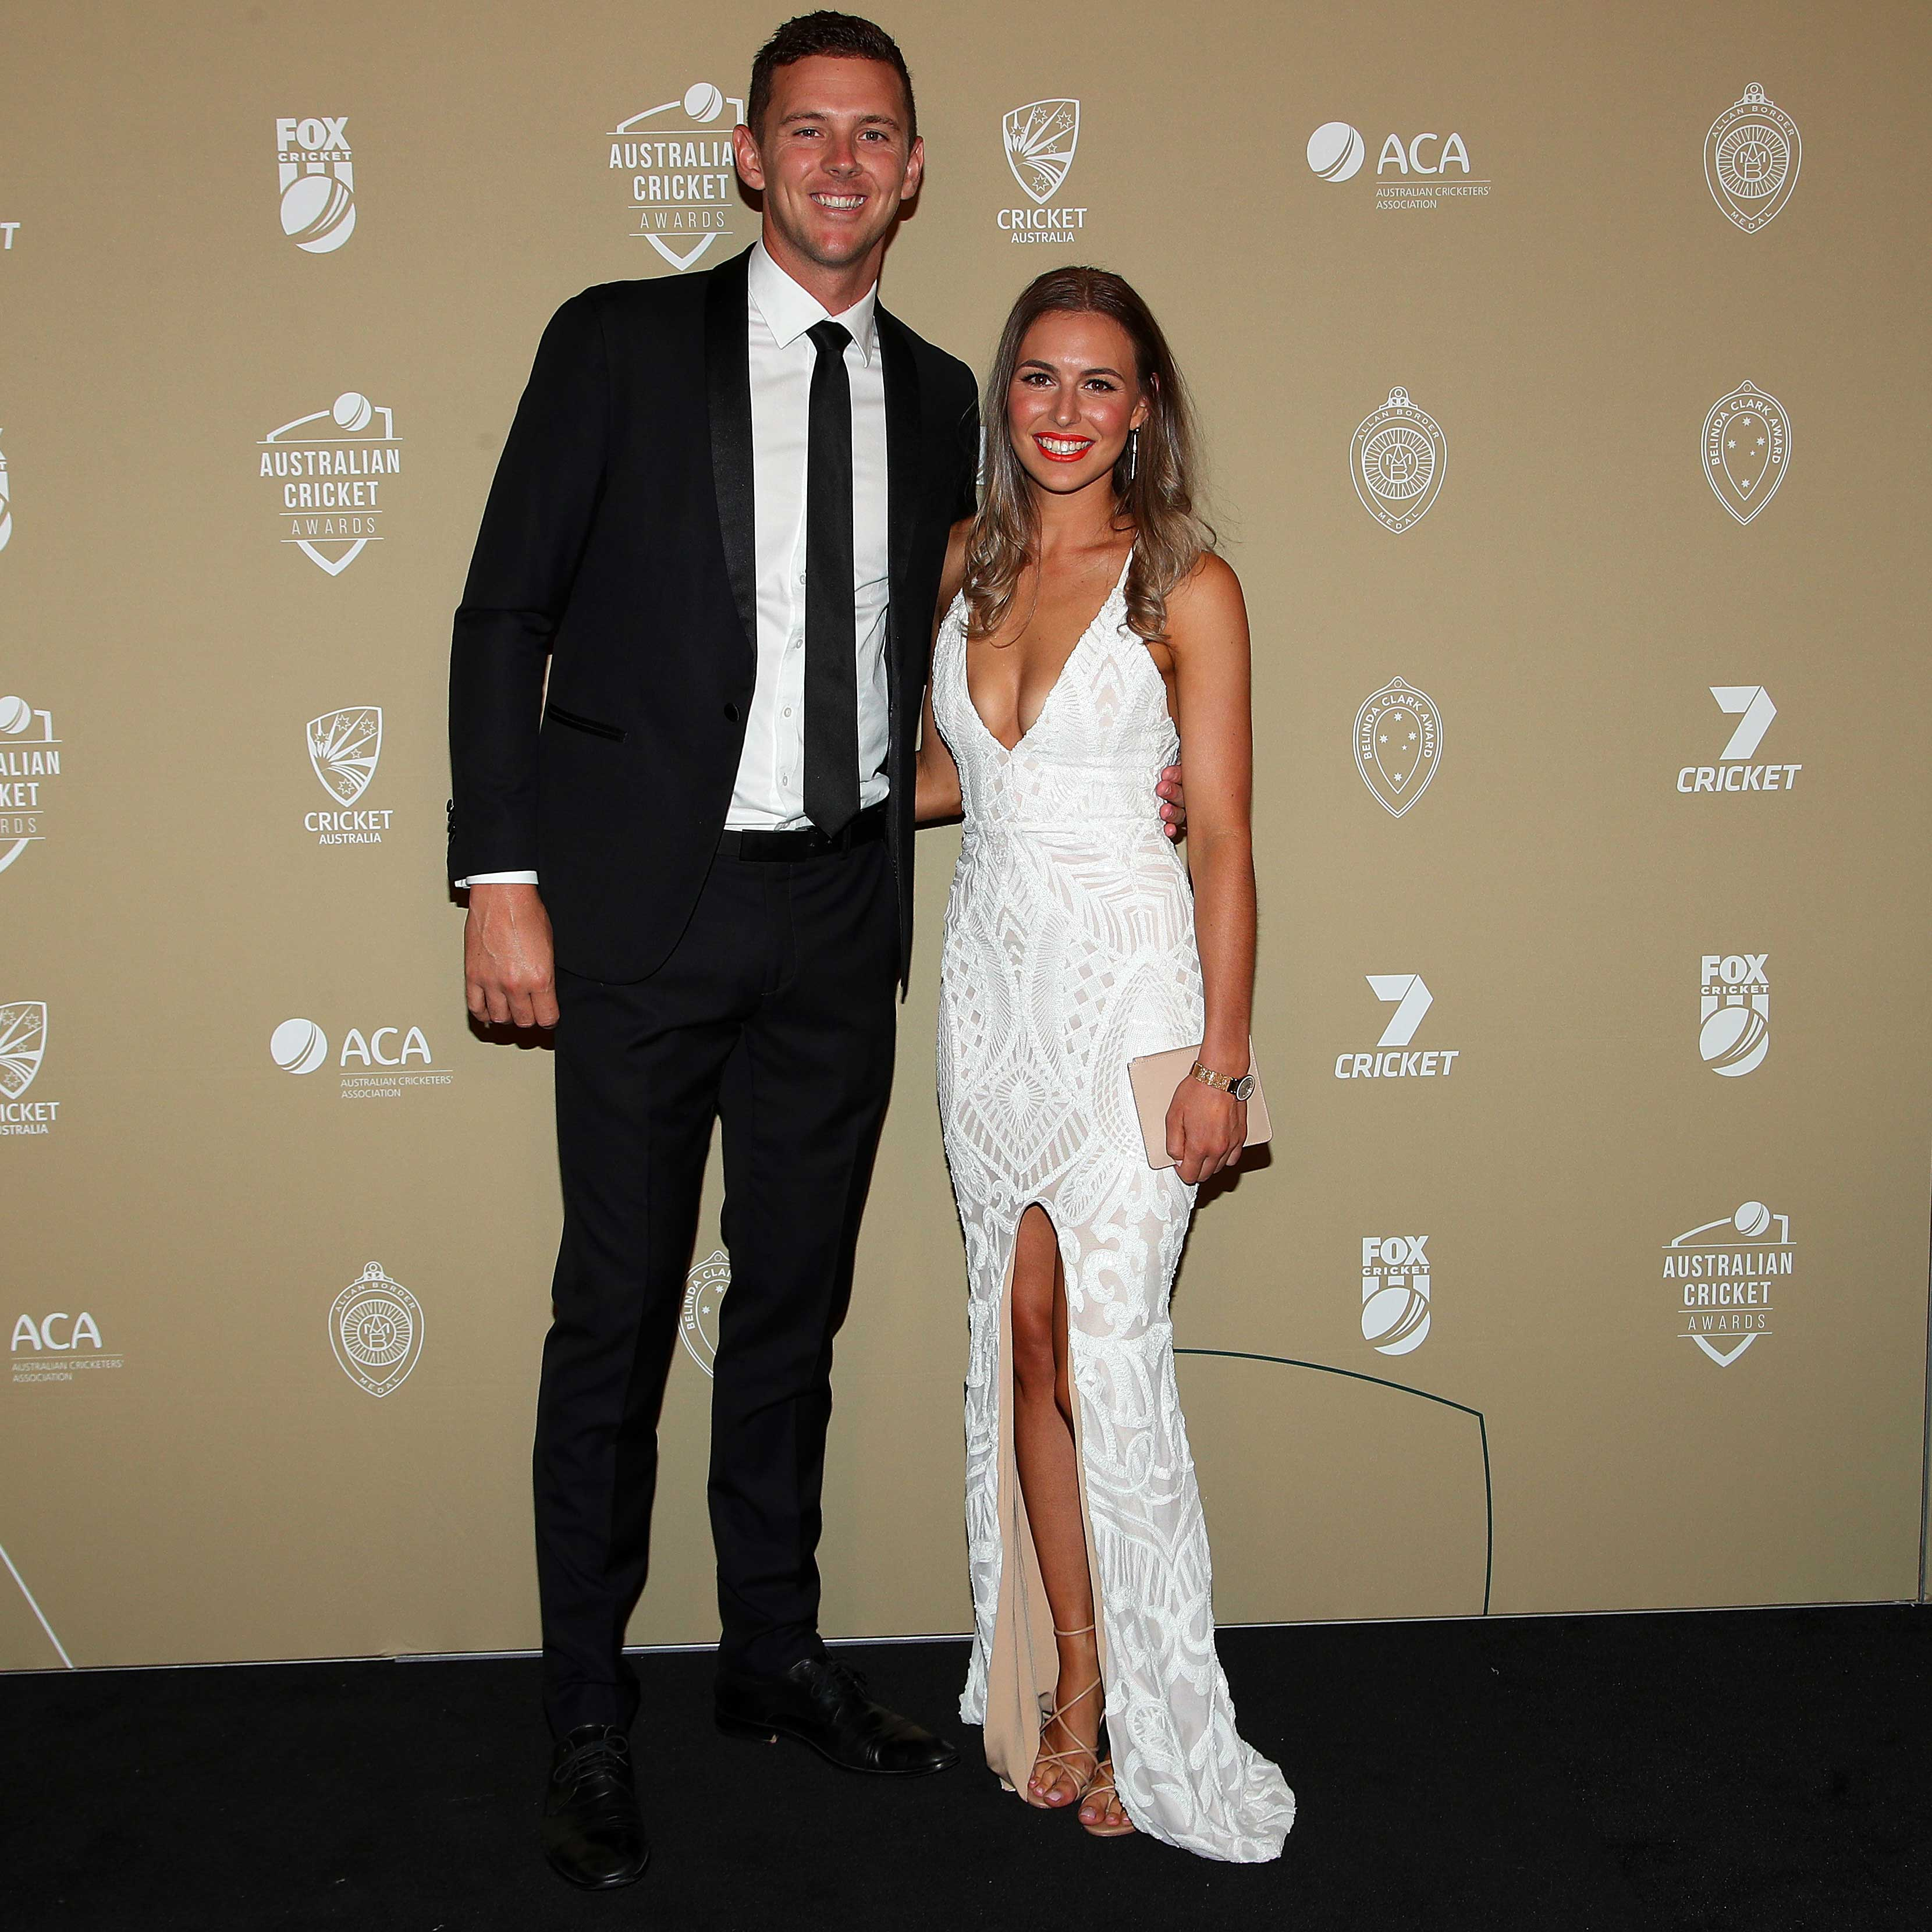 Josh Hazlewood and Cherie Christian // Getty